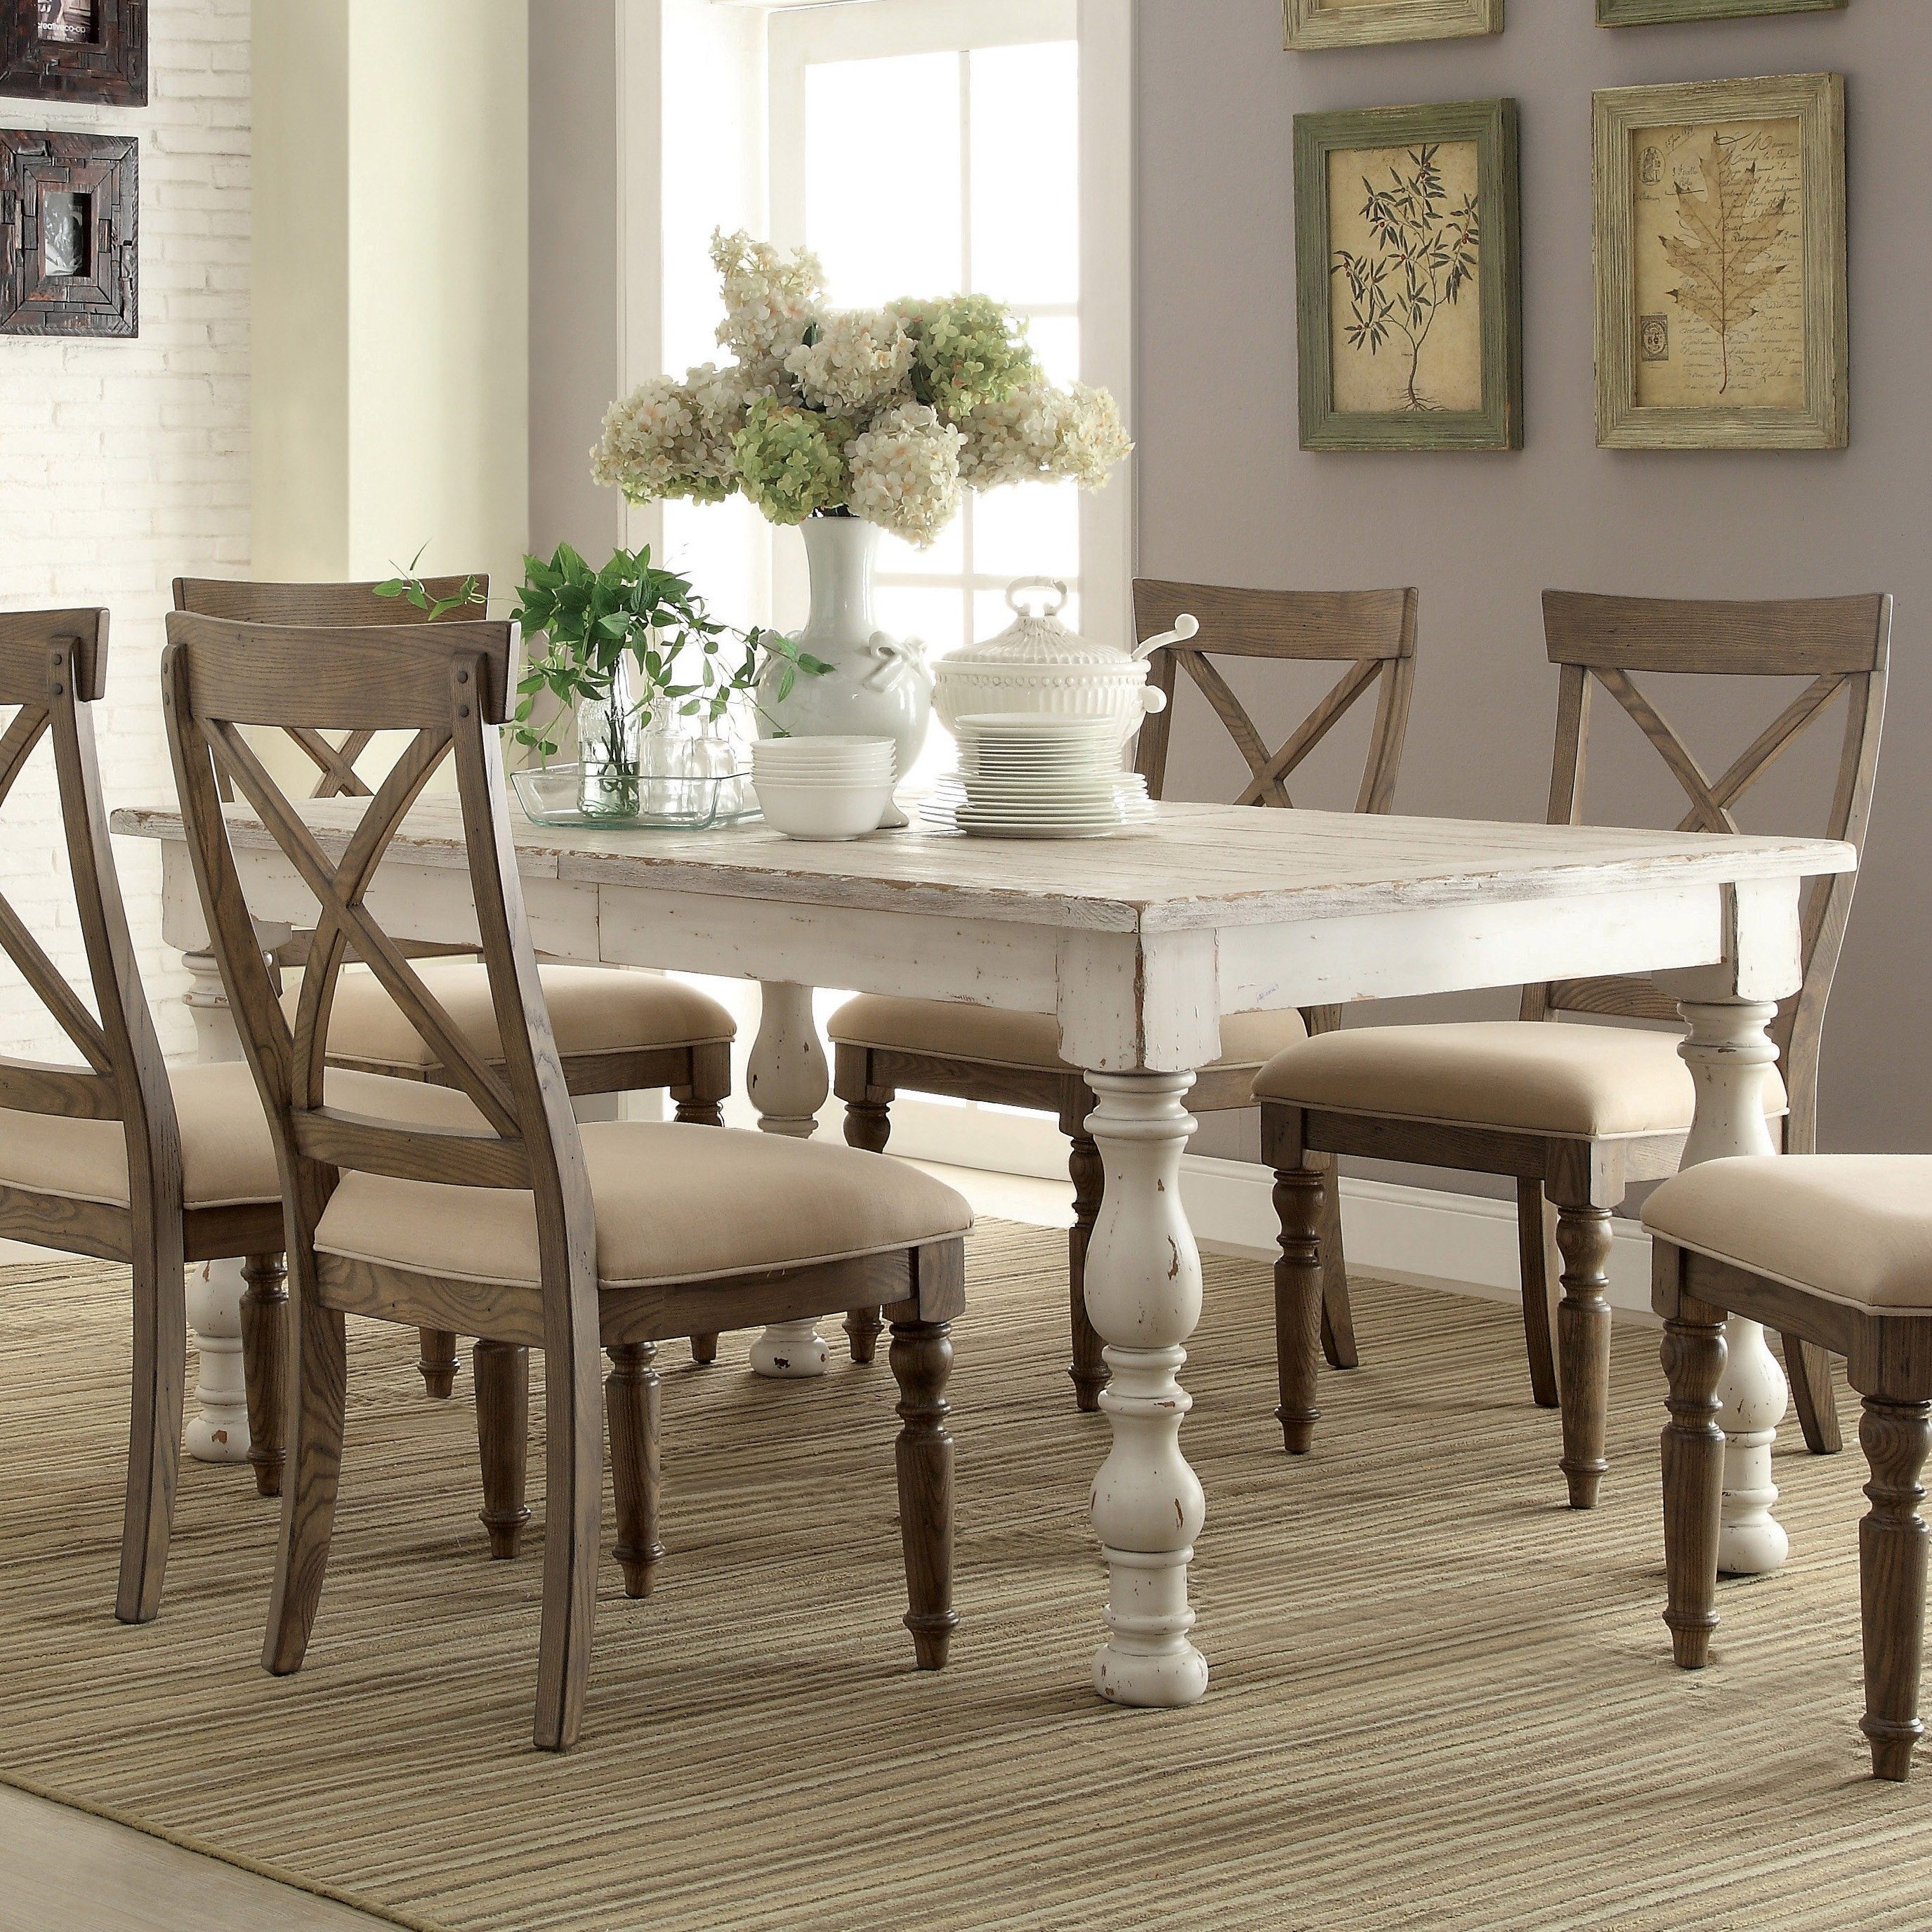 Aberdeen wood rectangular dining table and chairs in for Dining table chairs